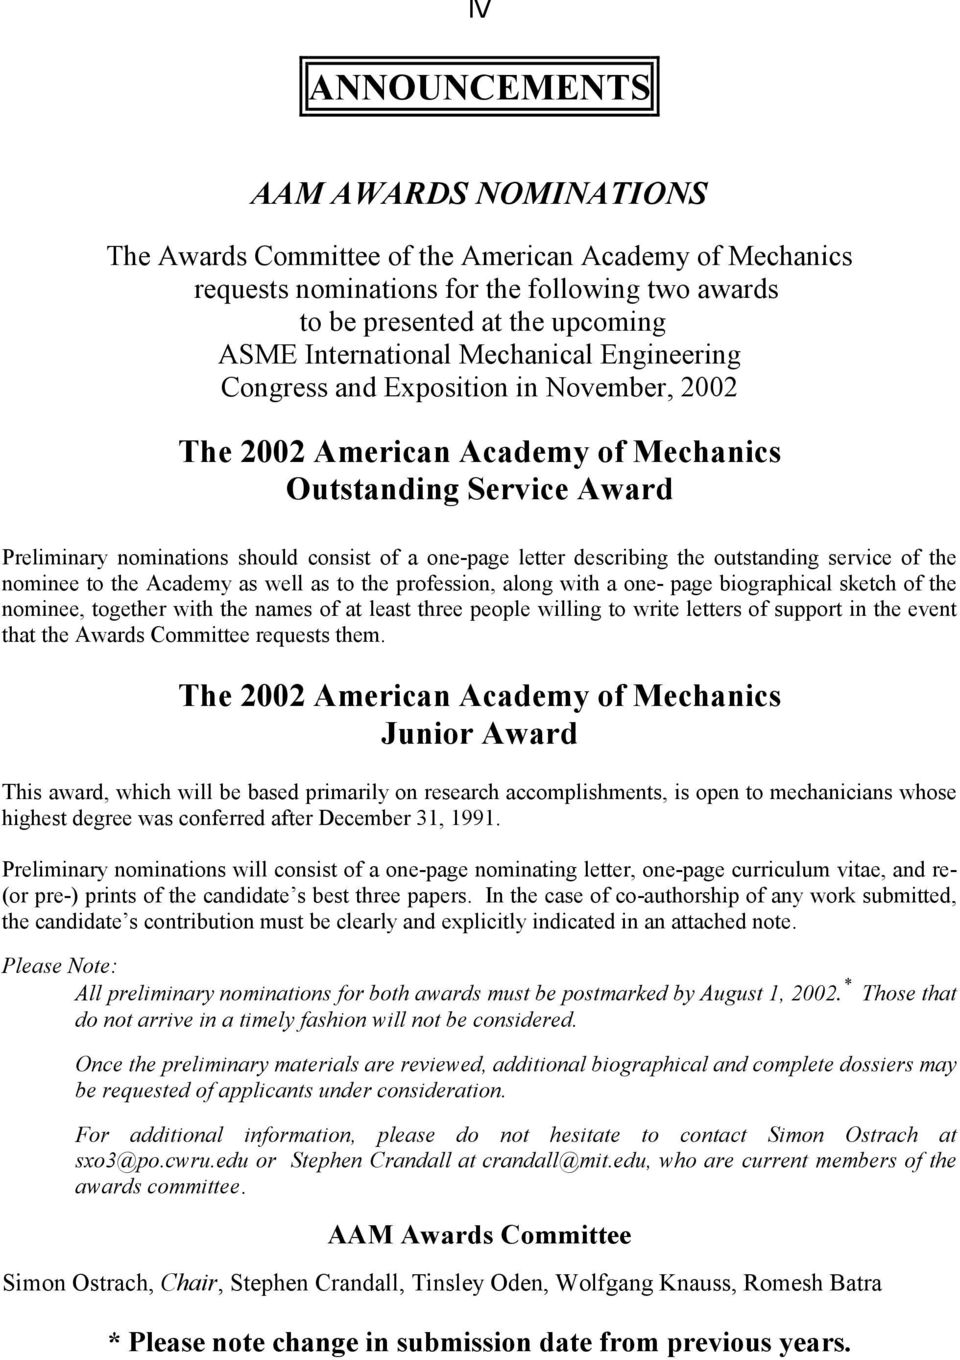 describing the outstanding service of the nominee to the Academy as well as to the profession, along with a one- page biographical sketch of the nominee, together with the names of at least three